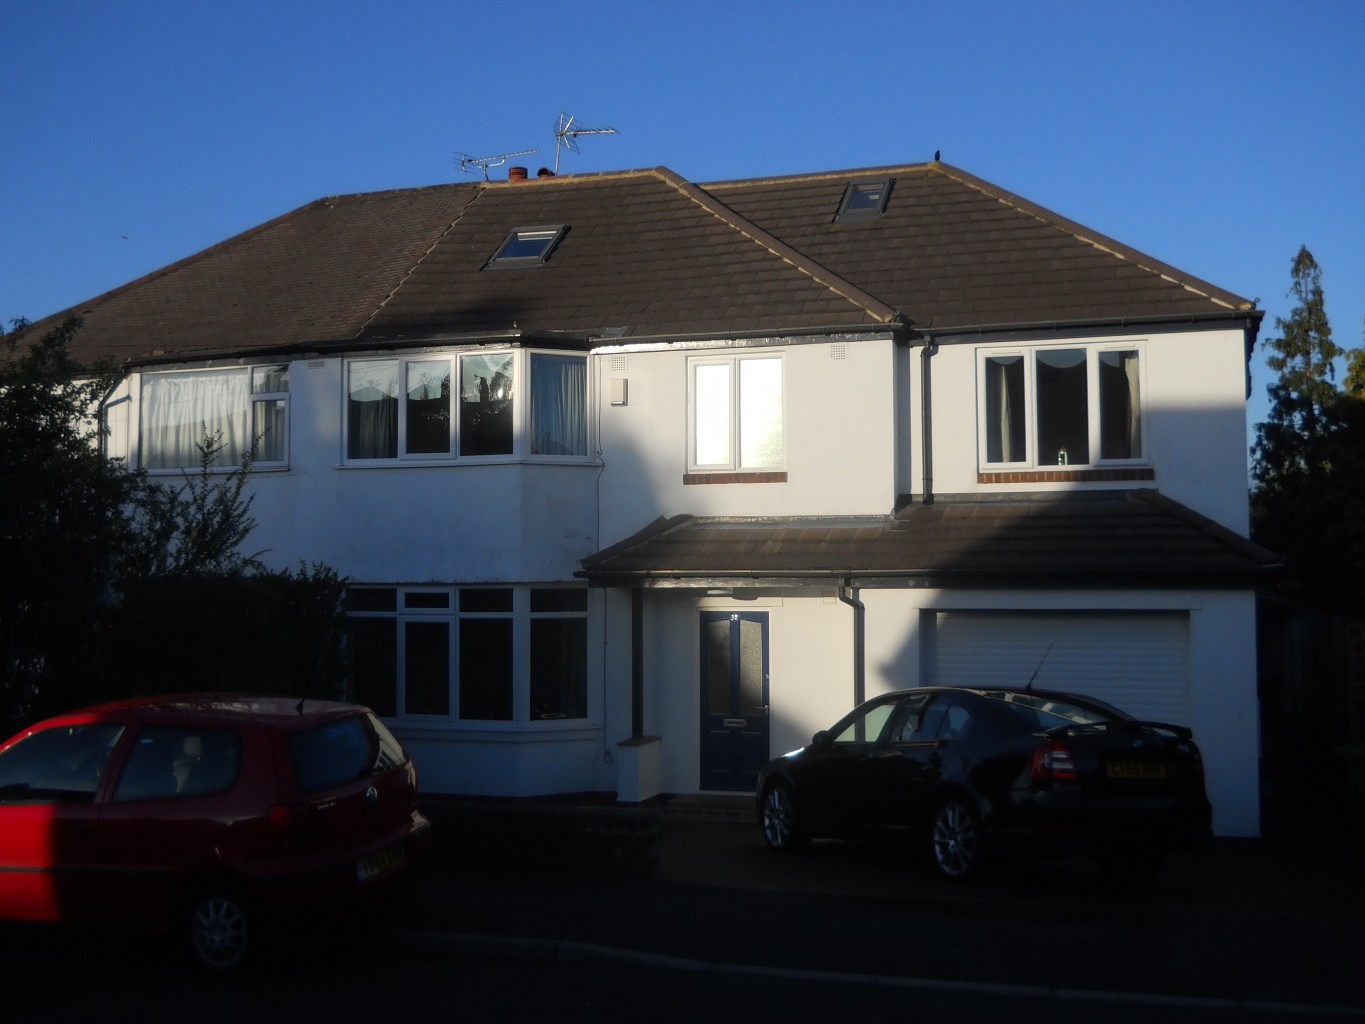 adjacent semi with existing extension similar to appeal